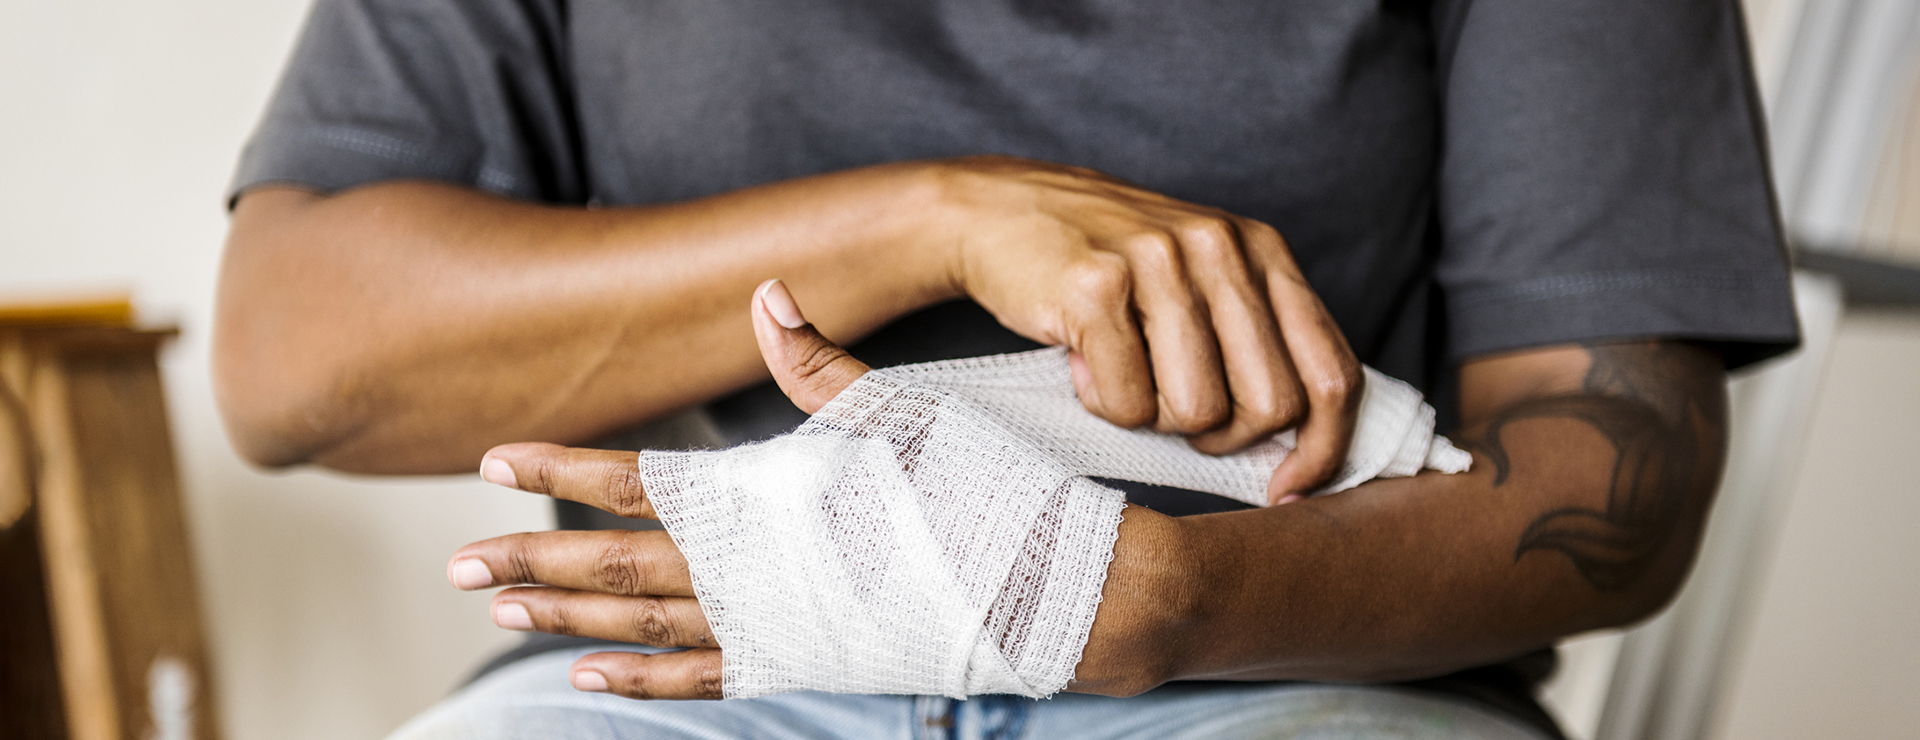 A person carefully wraps their arm in gauze.